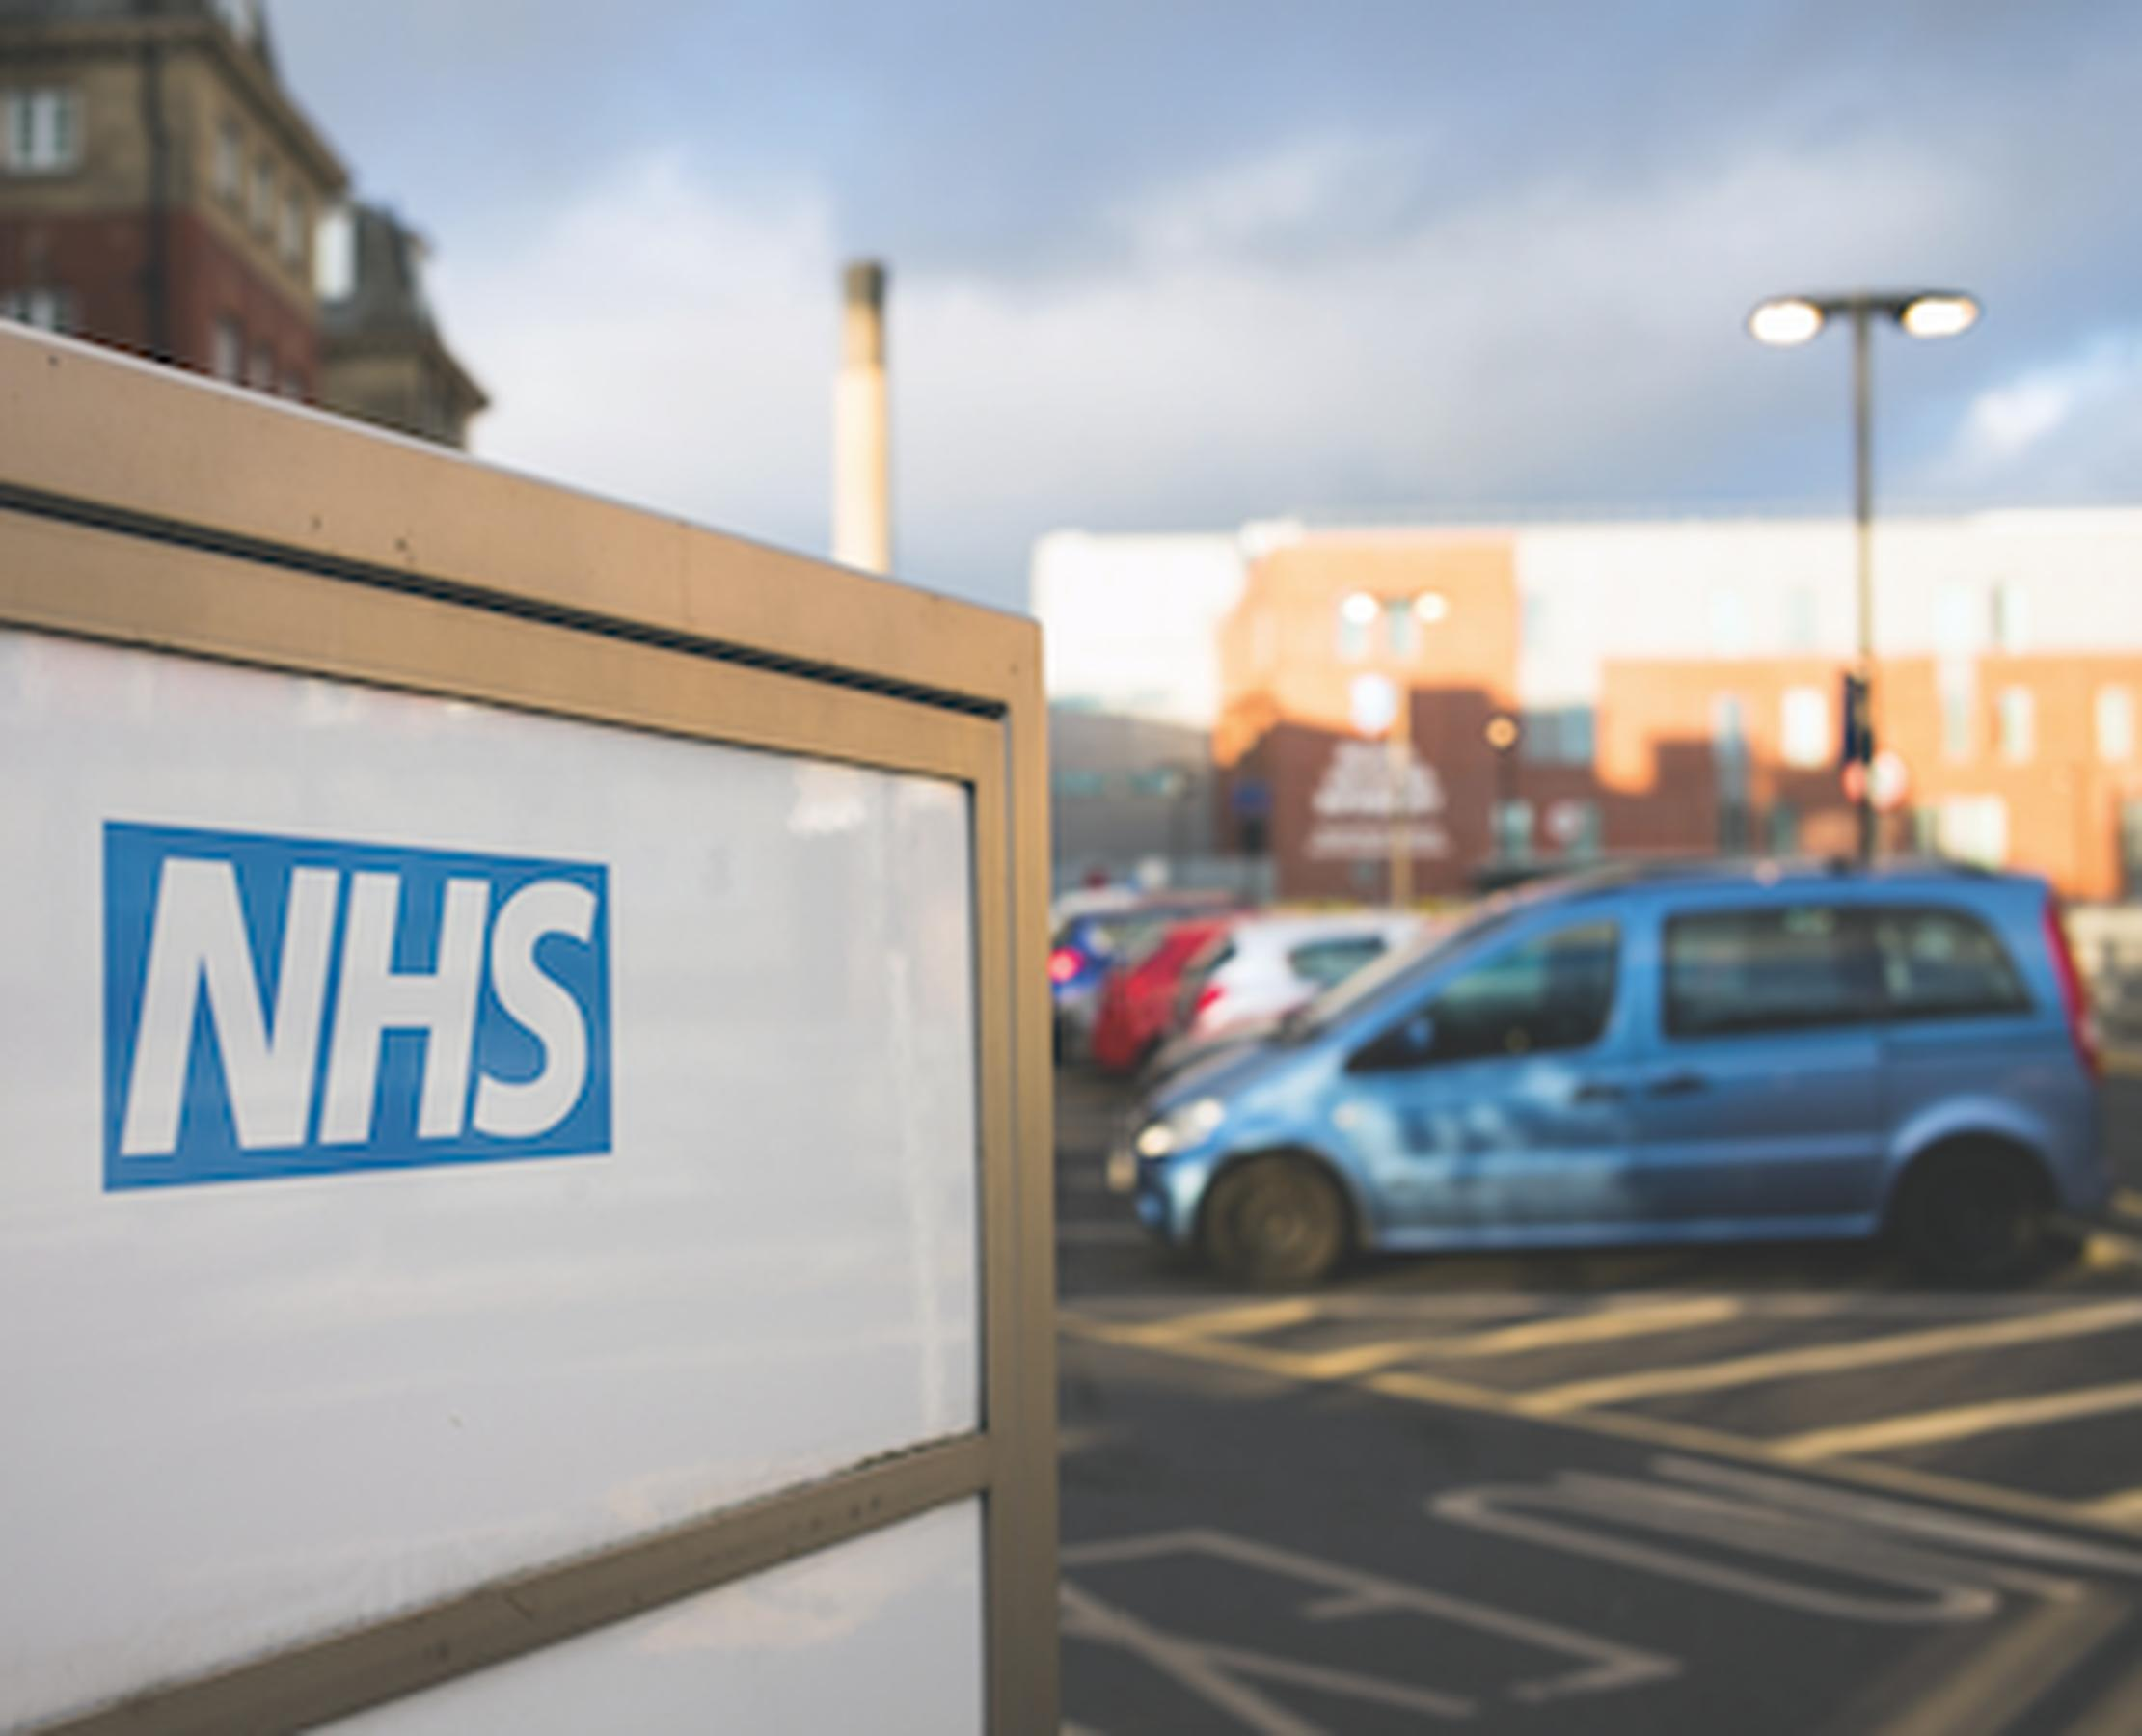 NHS staff will get free parking at hospitals